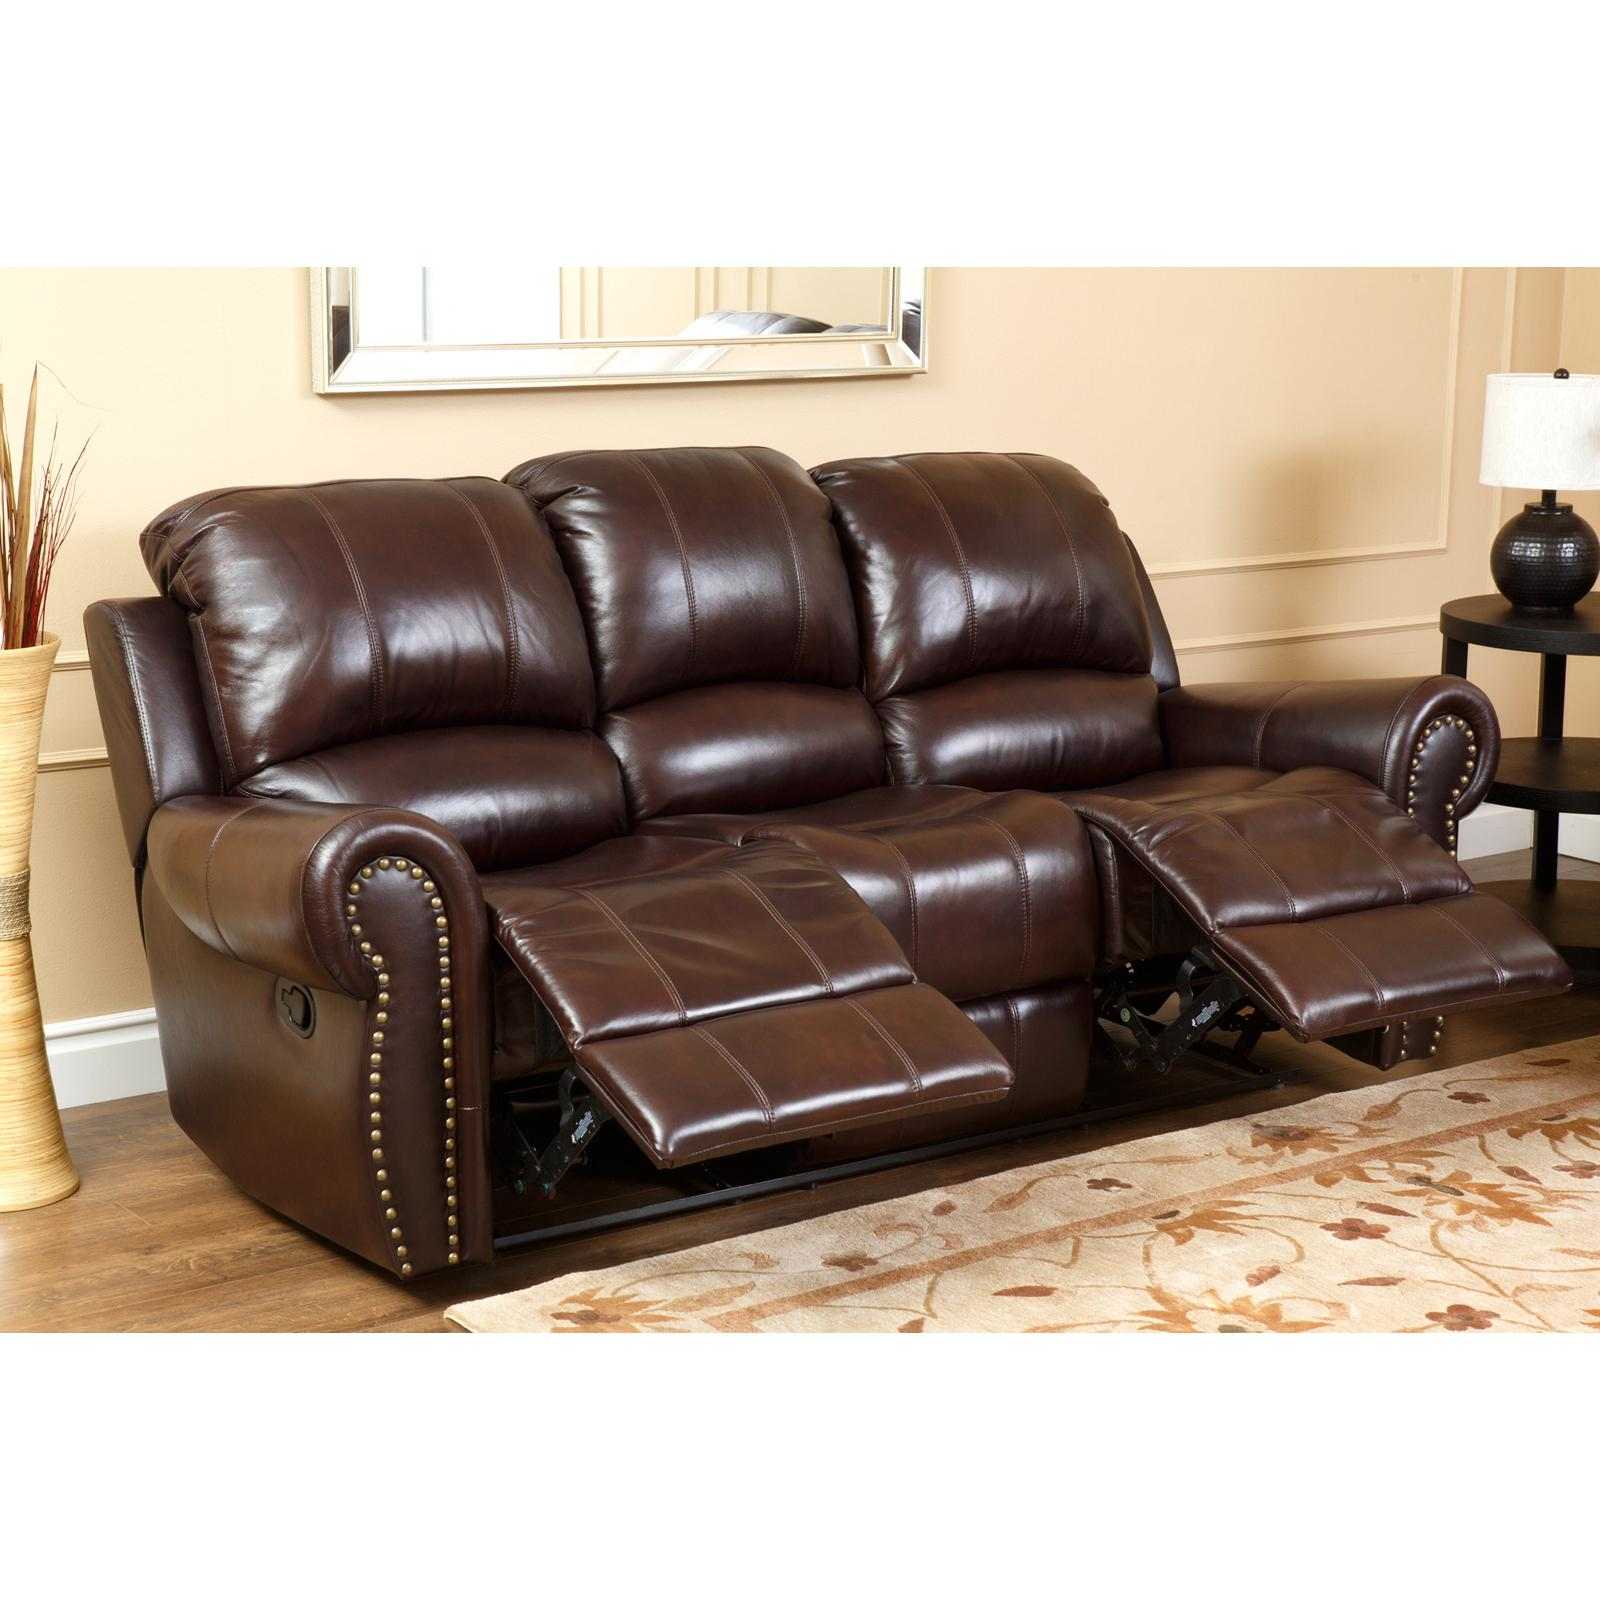 product r loveseats image w easton time la full reclining p z console loveseat